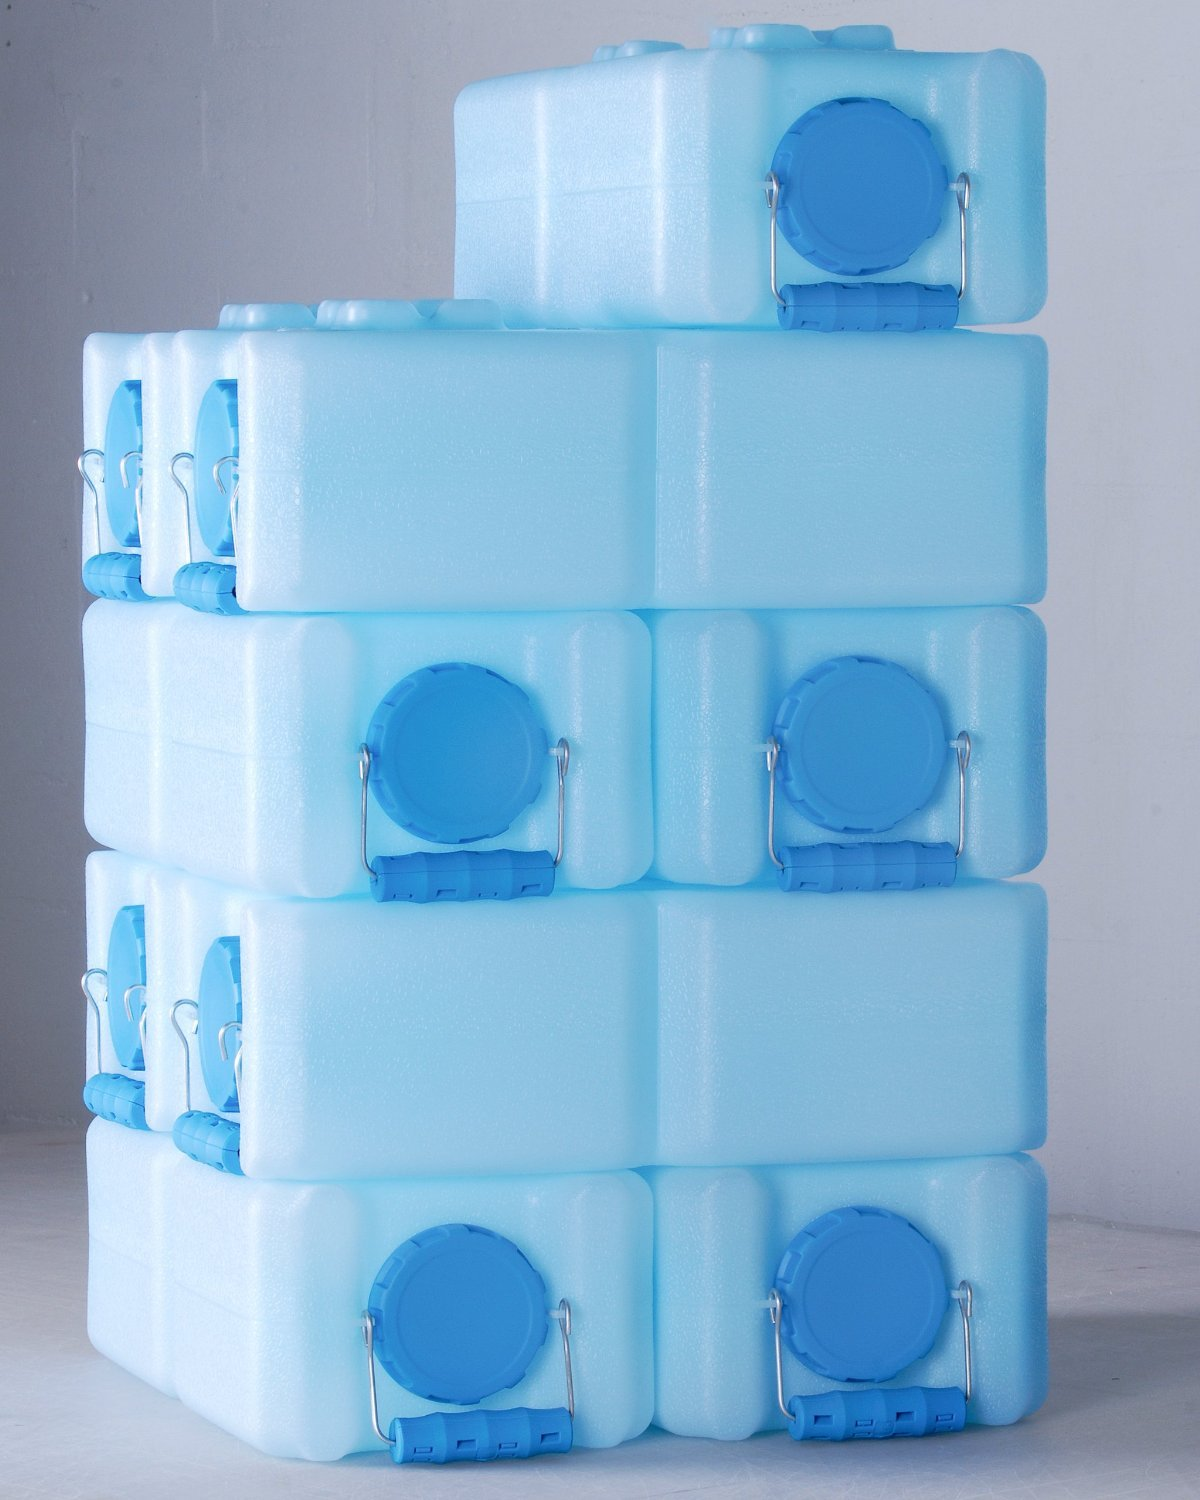 Amazon.com  WaterBrick - Emergency Water and Food Storage Containers - 8 Pack Blue  C&ing Water Storage  Sports u0026 Outdoors & Amazon.com : WaterBrick - Emergency Water and Food Storage ...